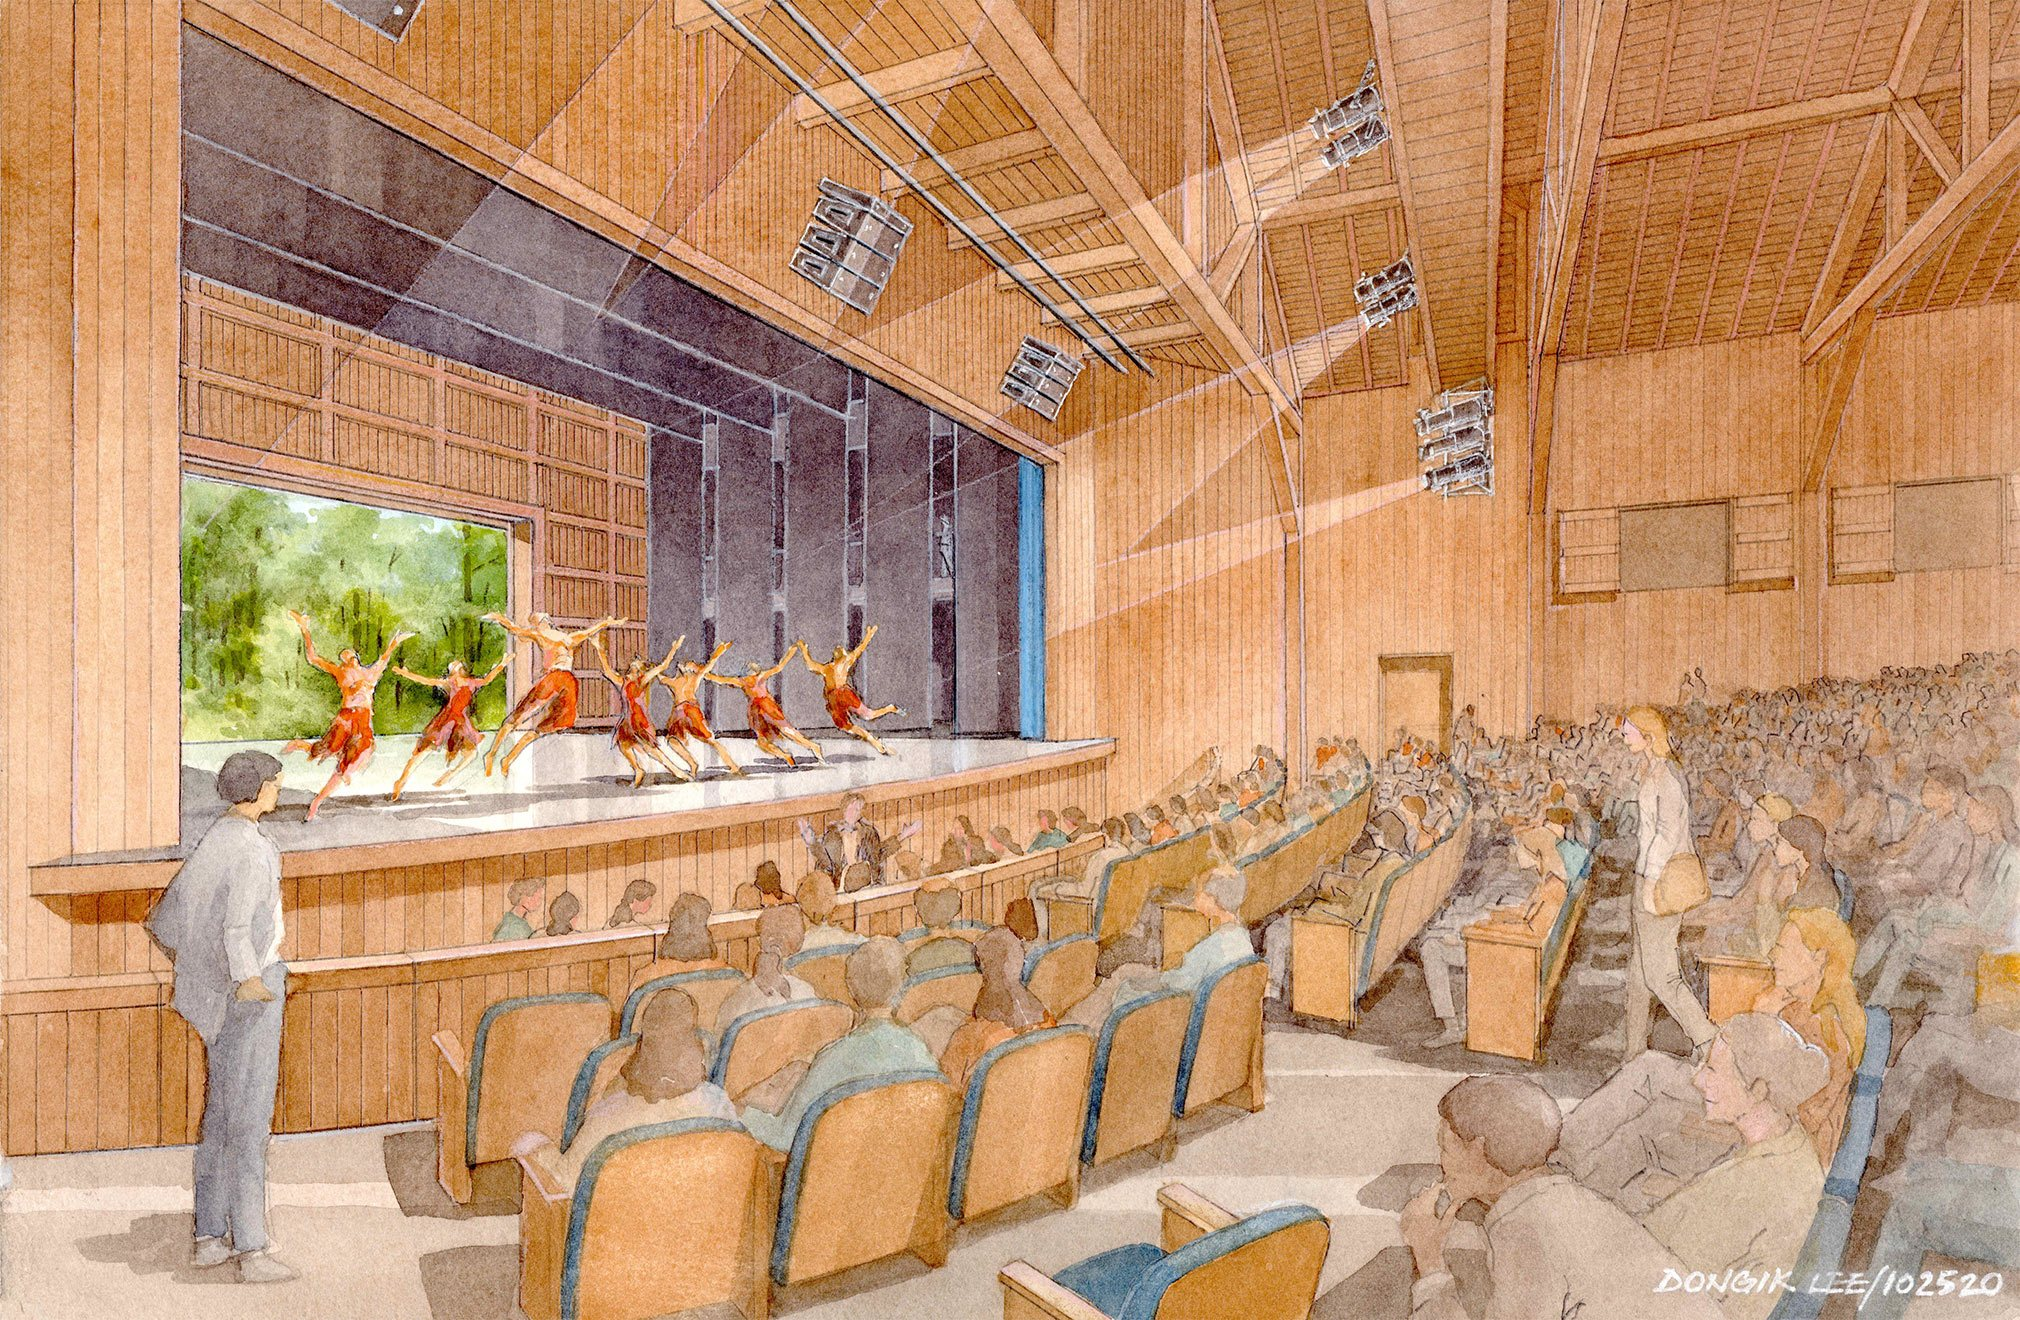 Ted Shawn Theatre rendering; Flansburgh Architects